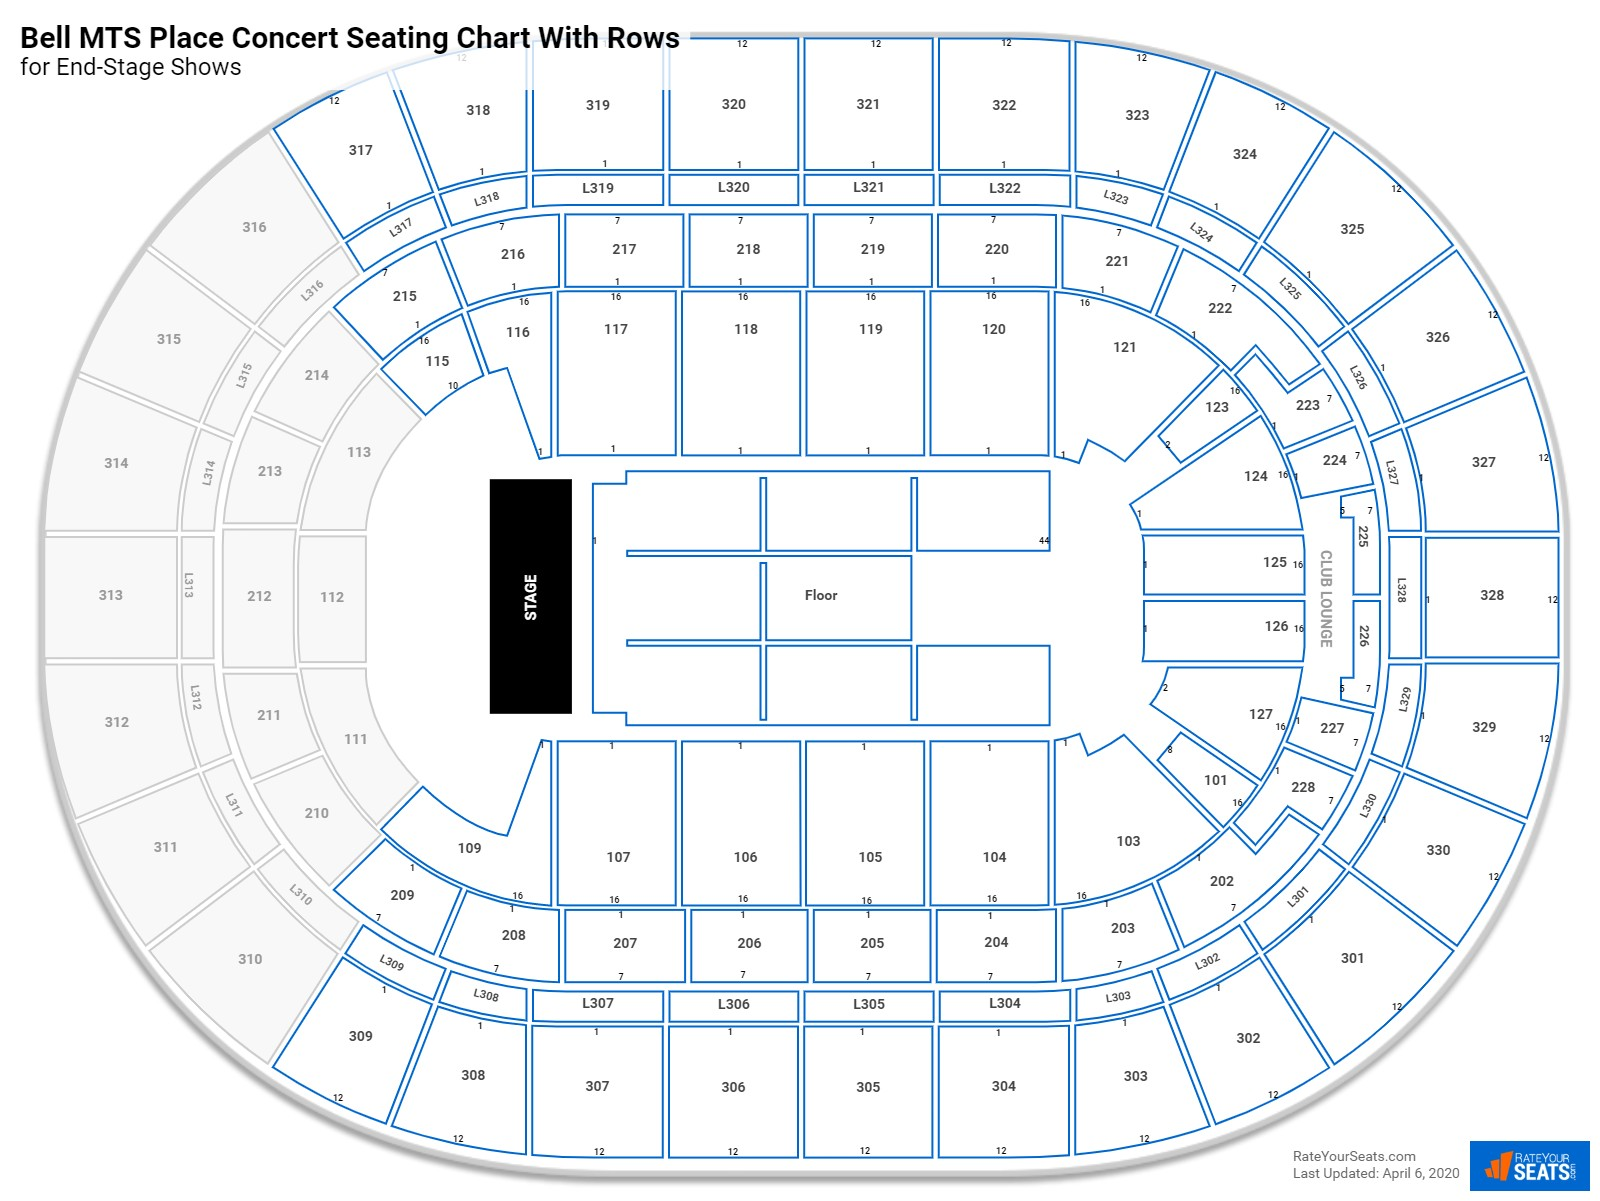 Bell MTS Place seating chart with rows concert